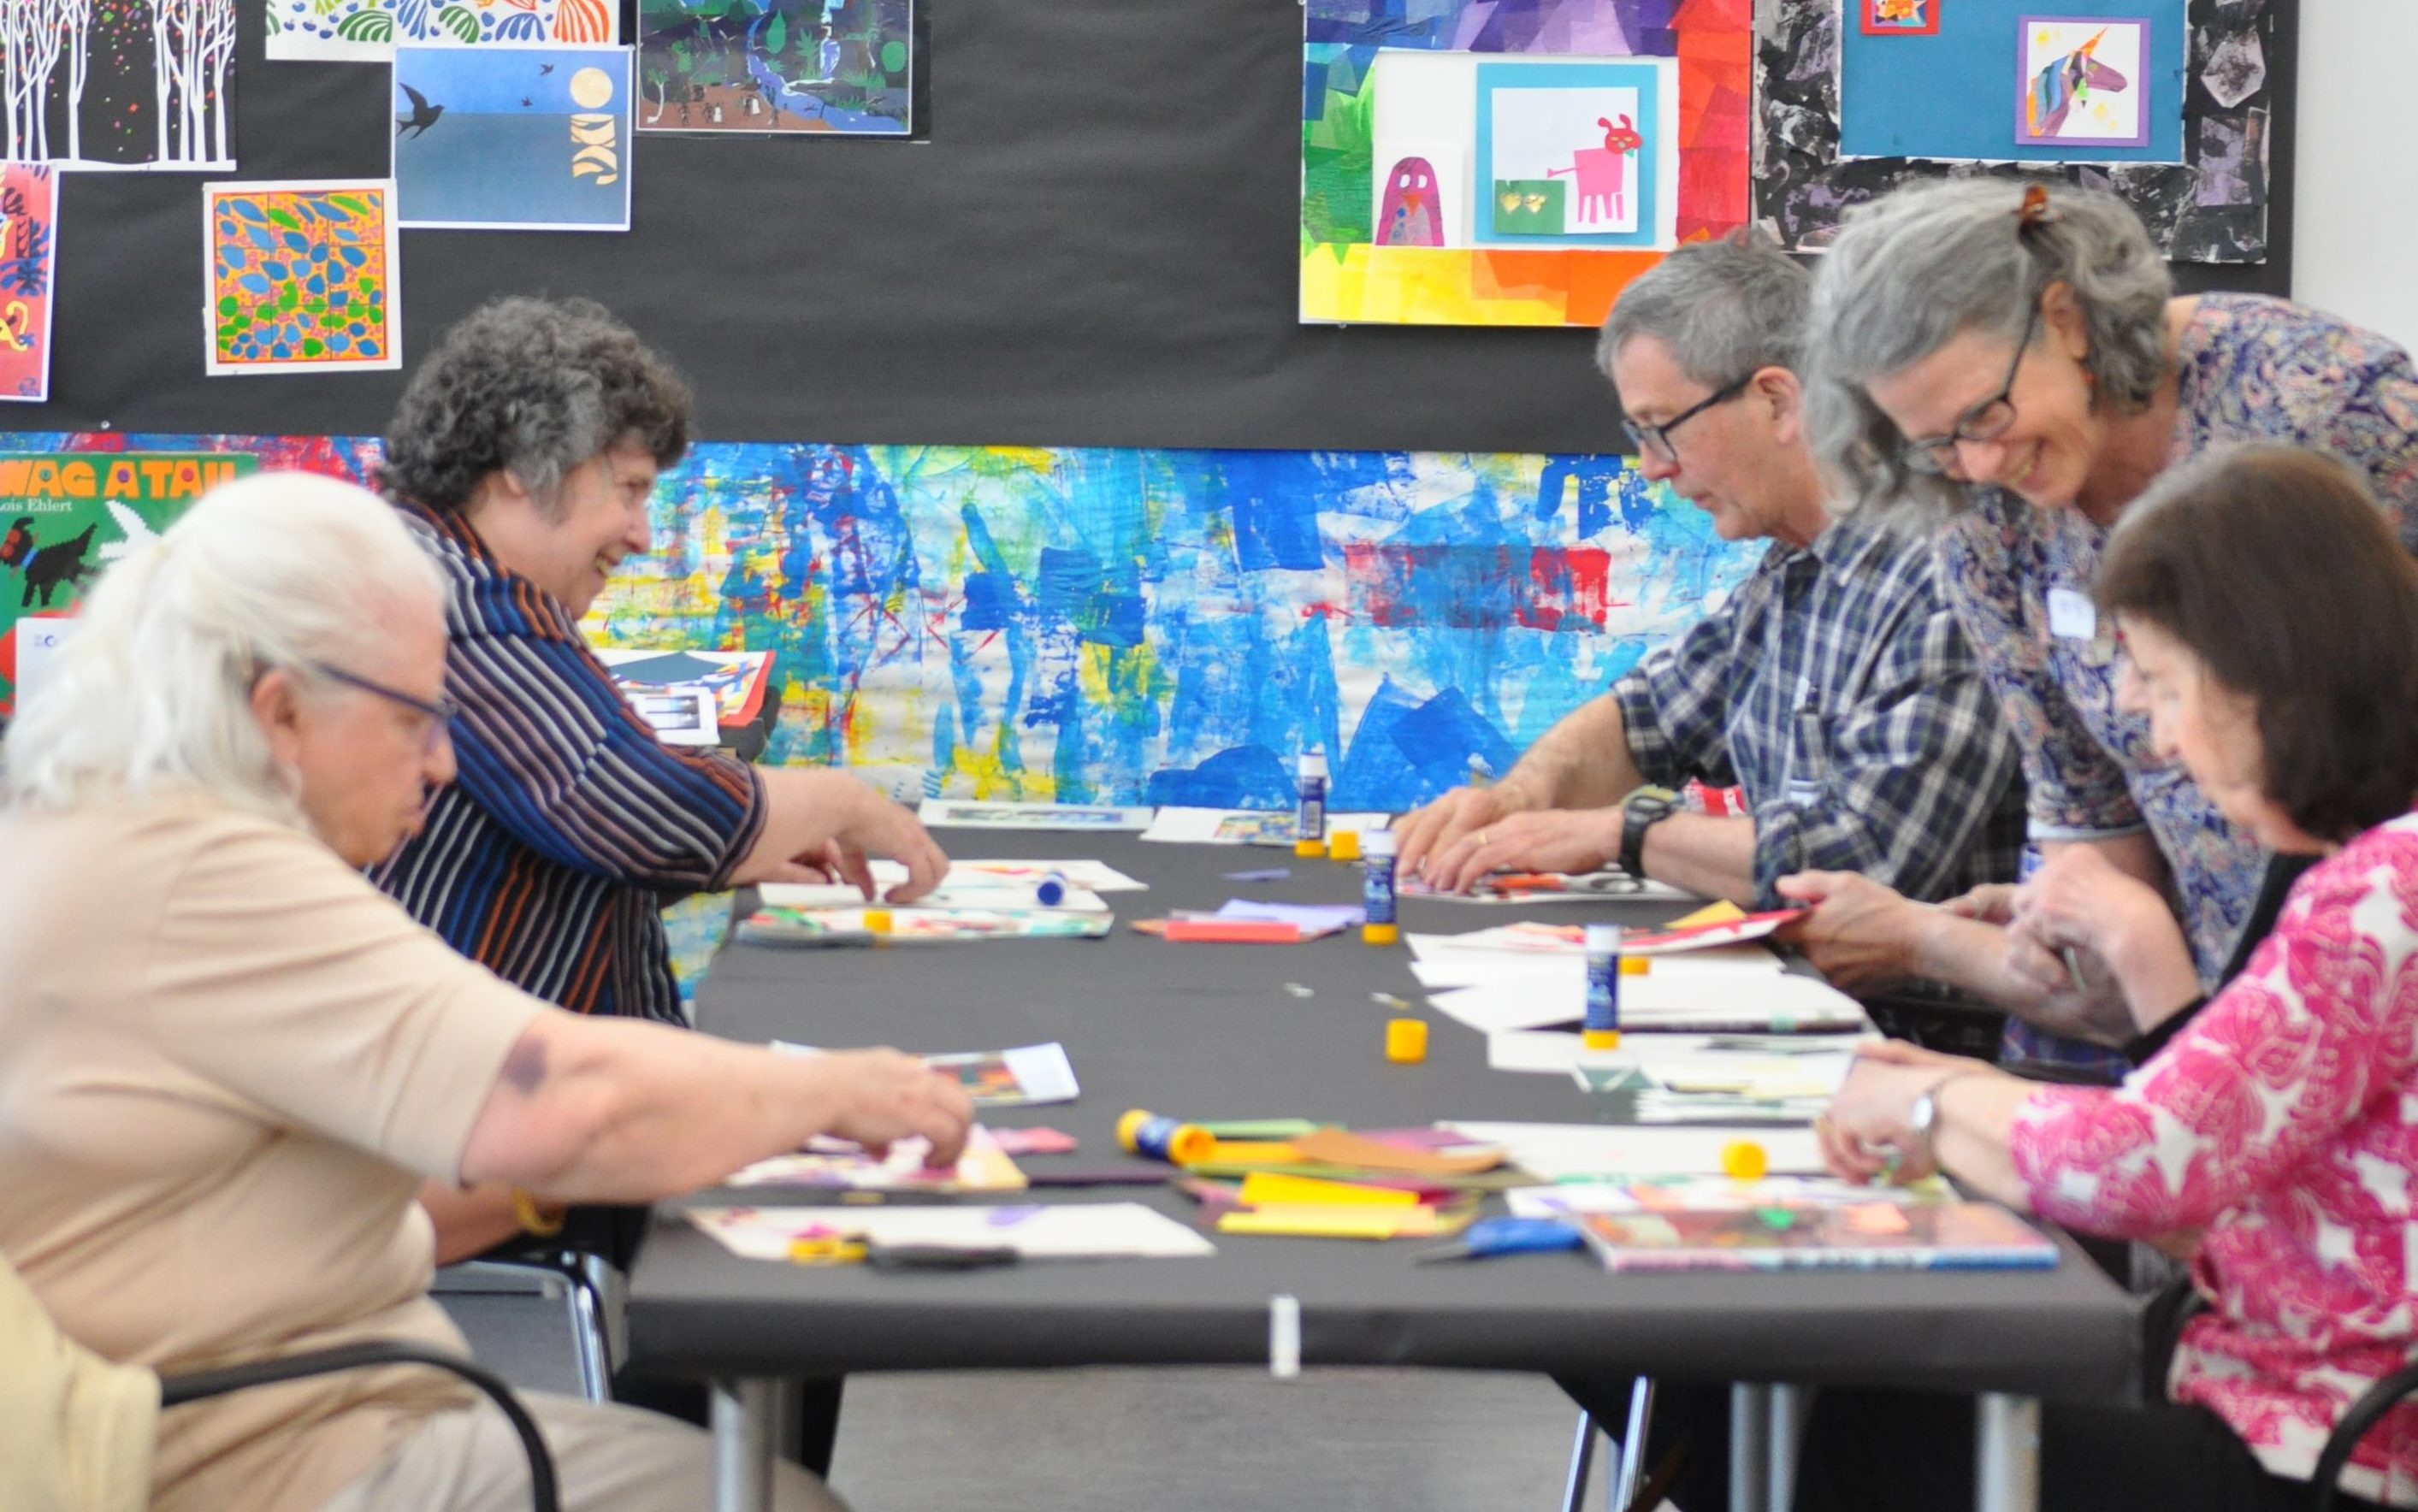 Seeding Vitality Arts programming at the Eric Carle Museum of Picture Book Art